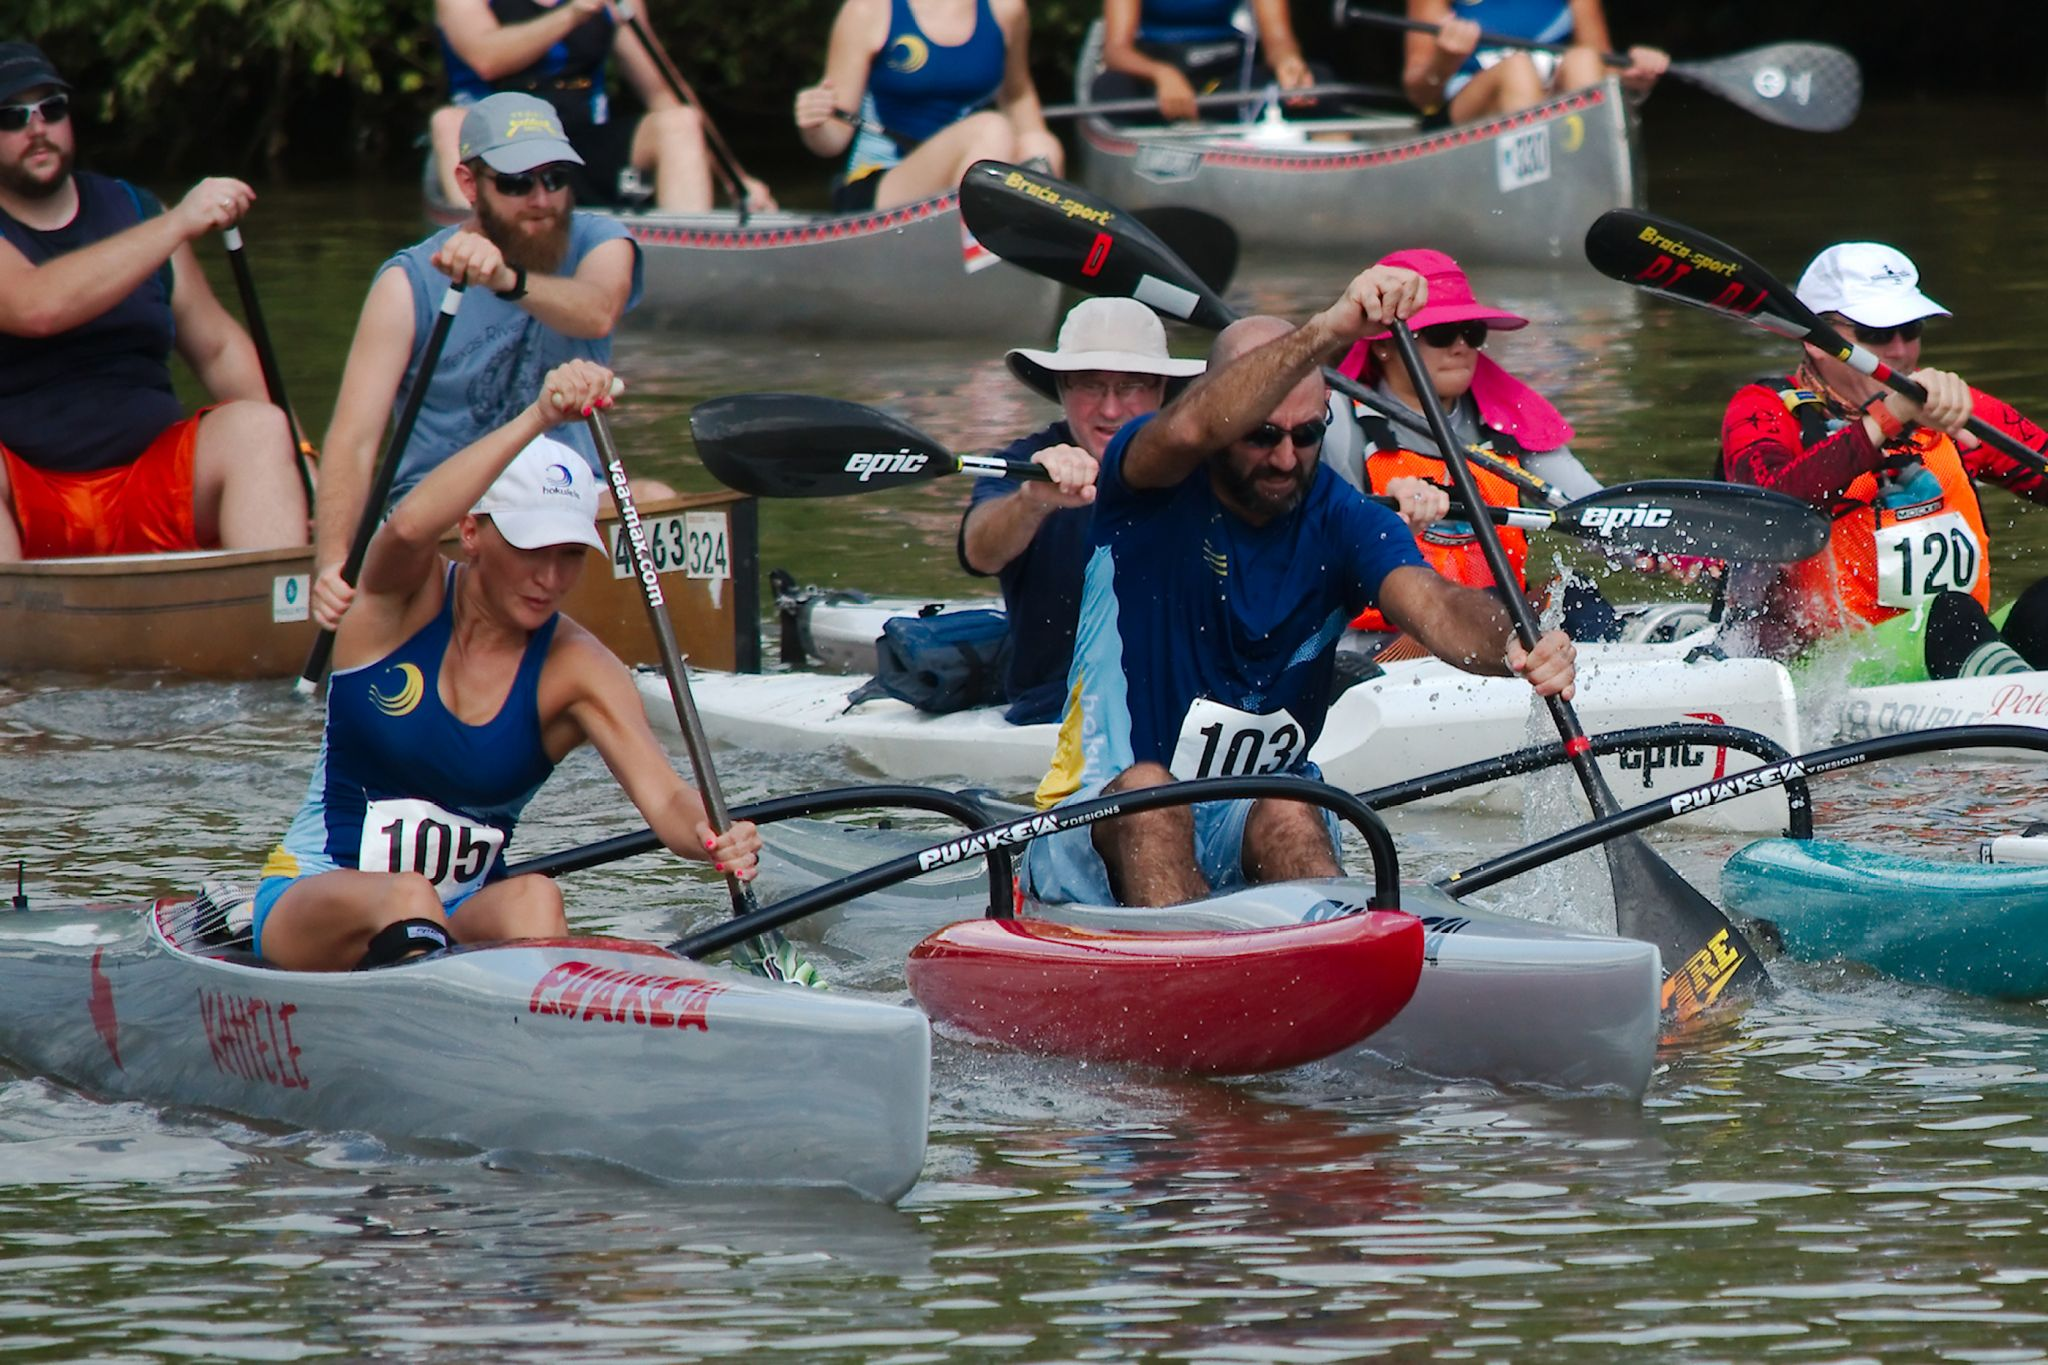 Clear Creek Paddle Race is cool fun for beginners and experts